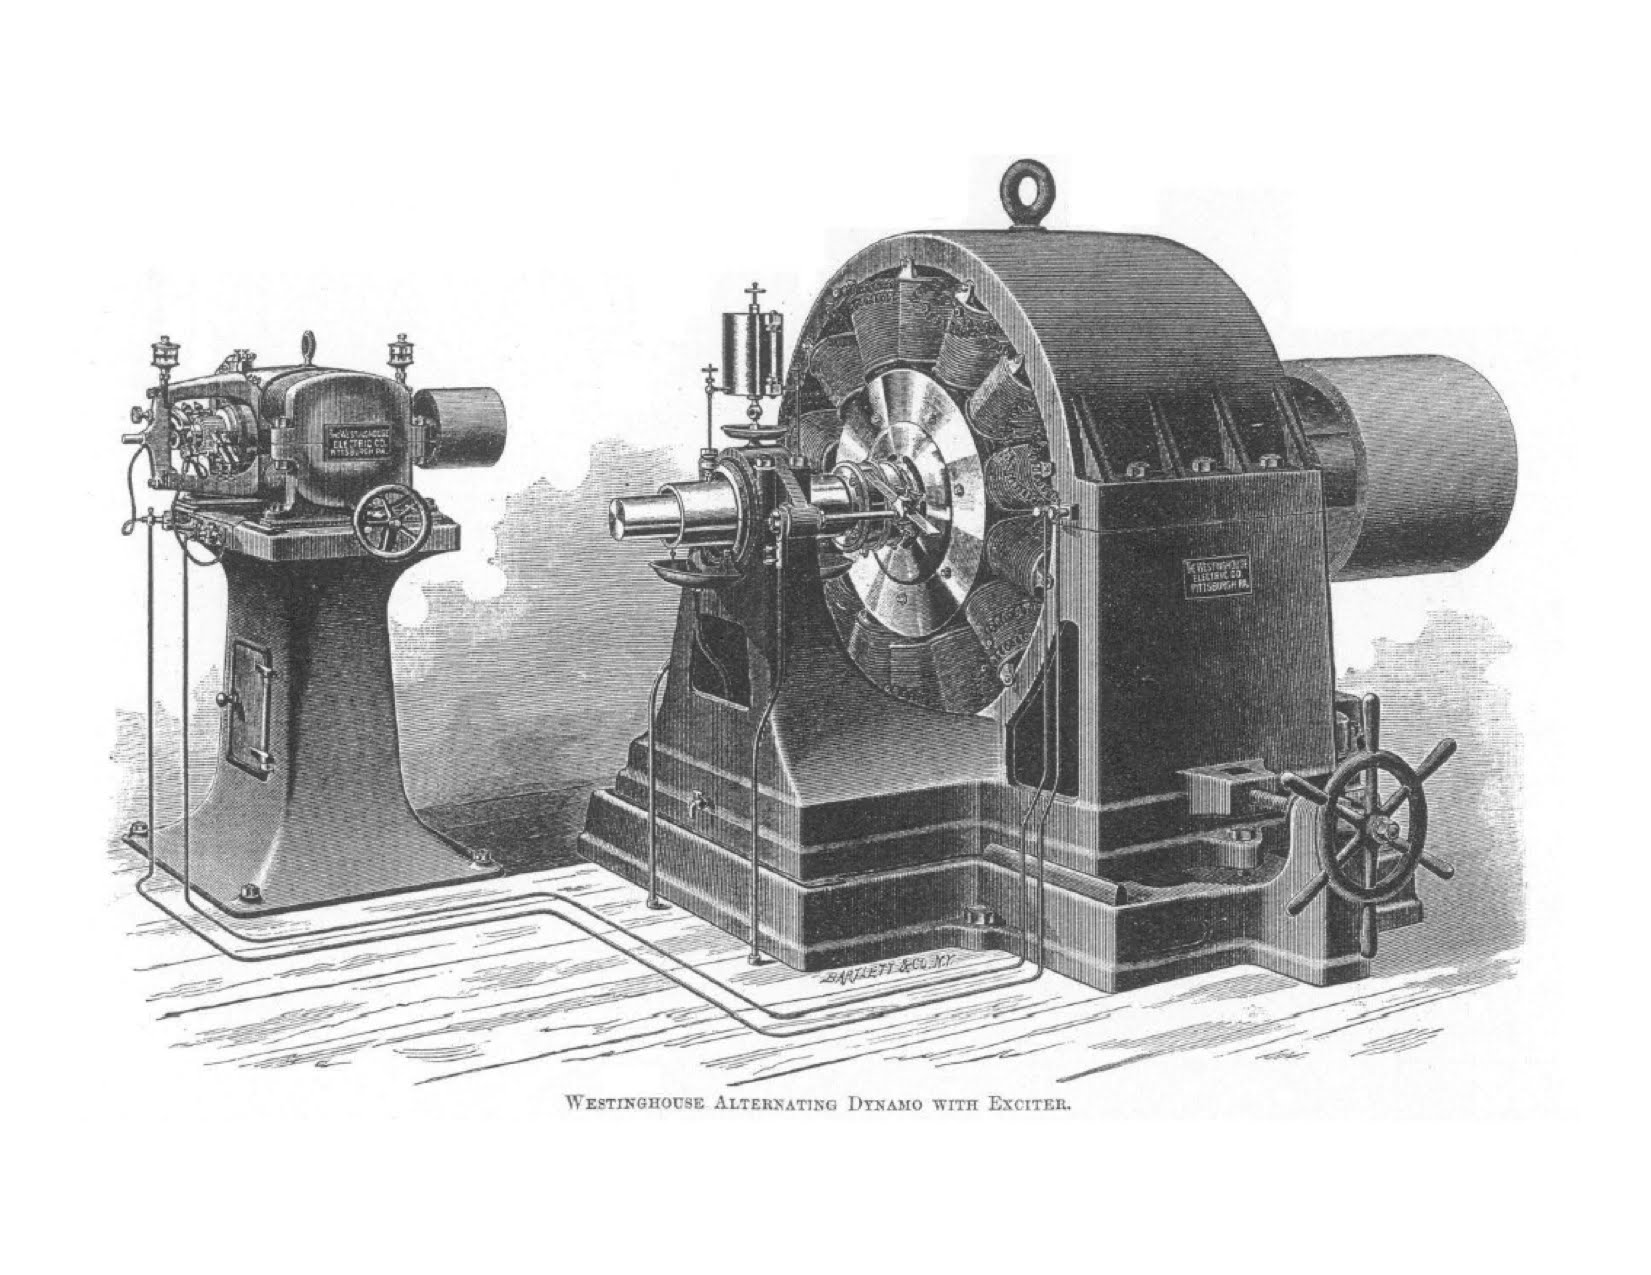 Nicola Tesla's AC turbine design was acquired by Westinghouse